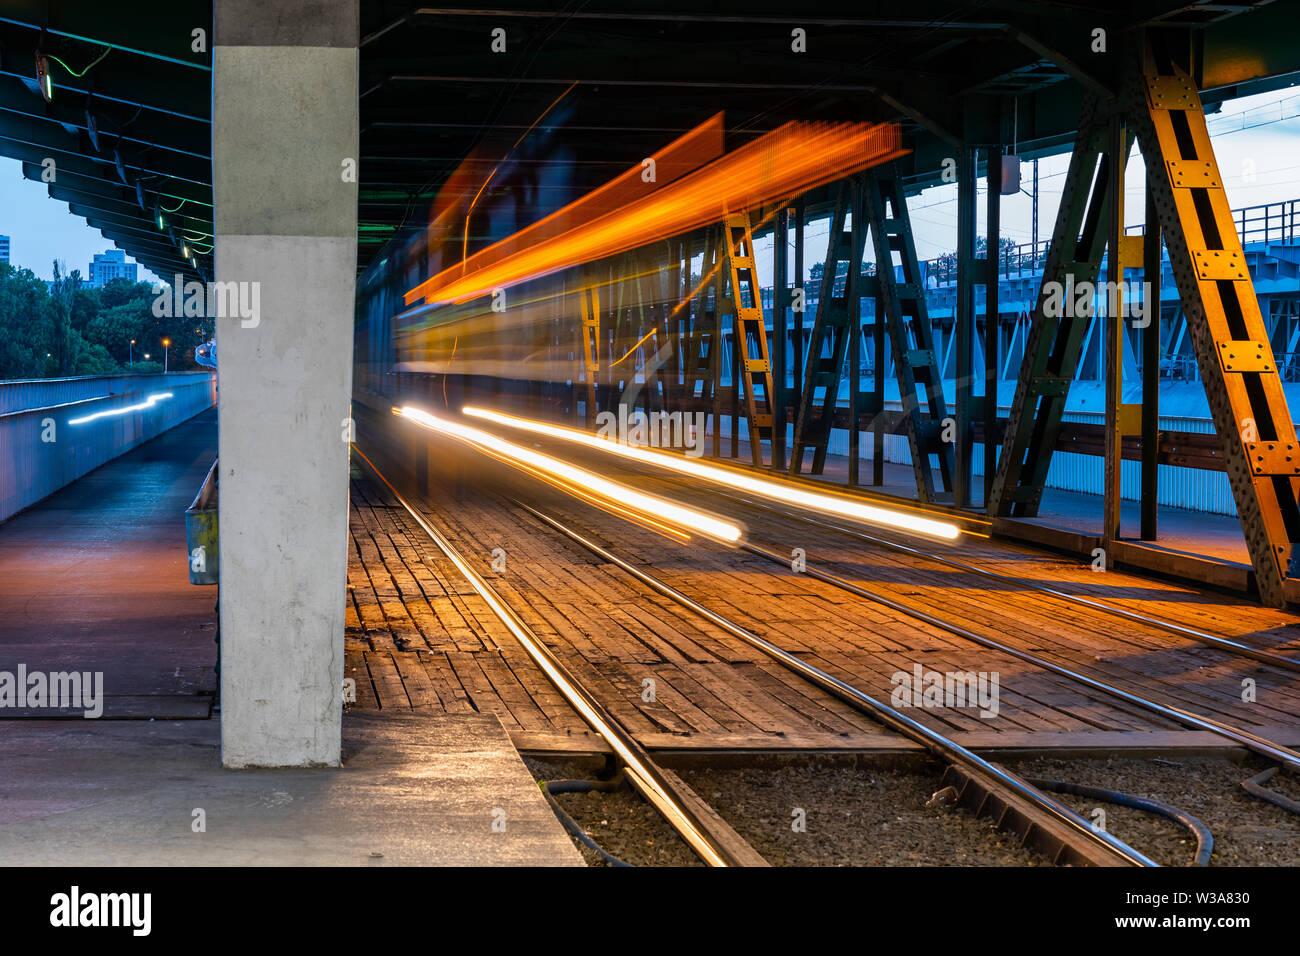 Gdanski Bridge with tram light trails in the evening in Warsaw, Poland. - Stock Image